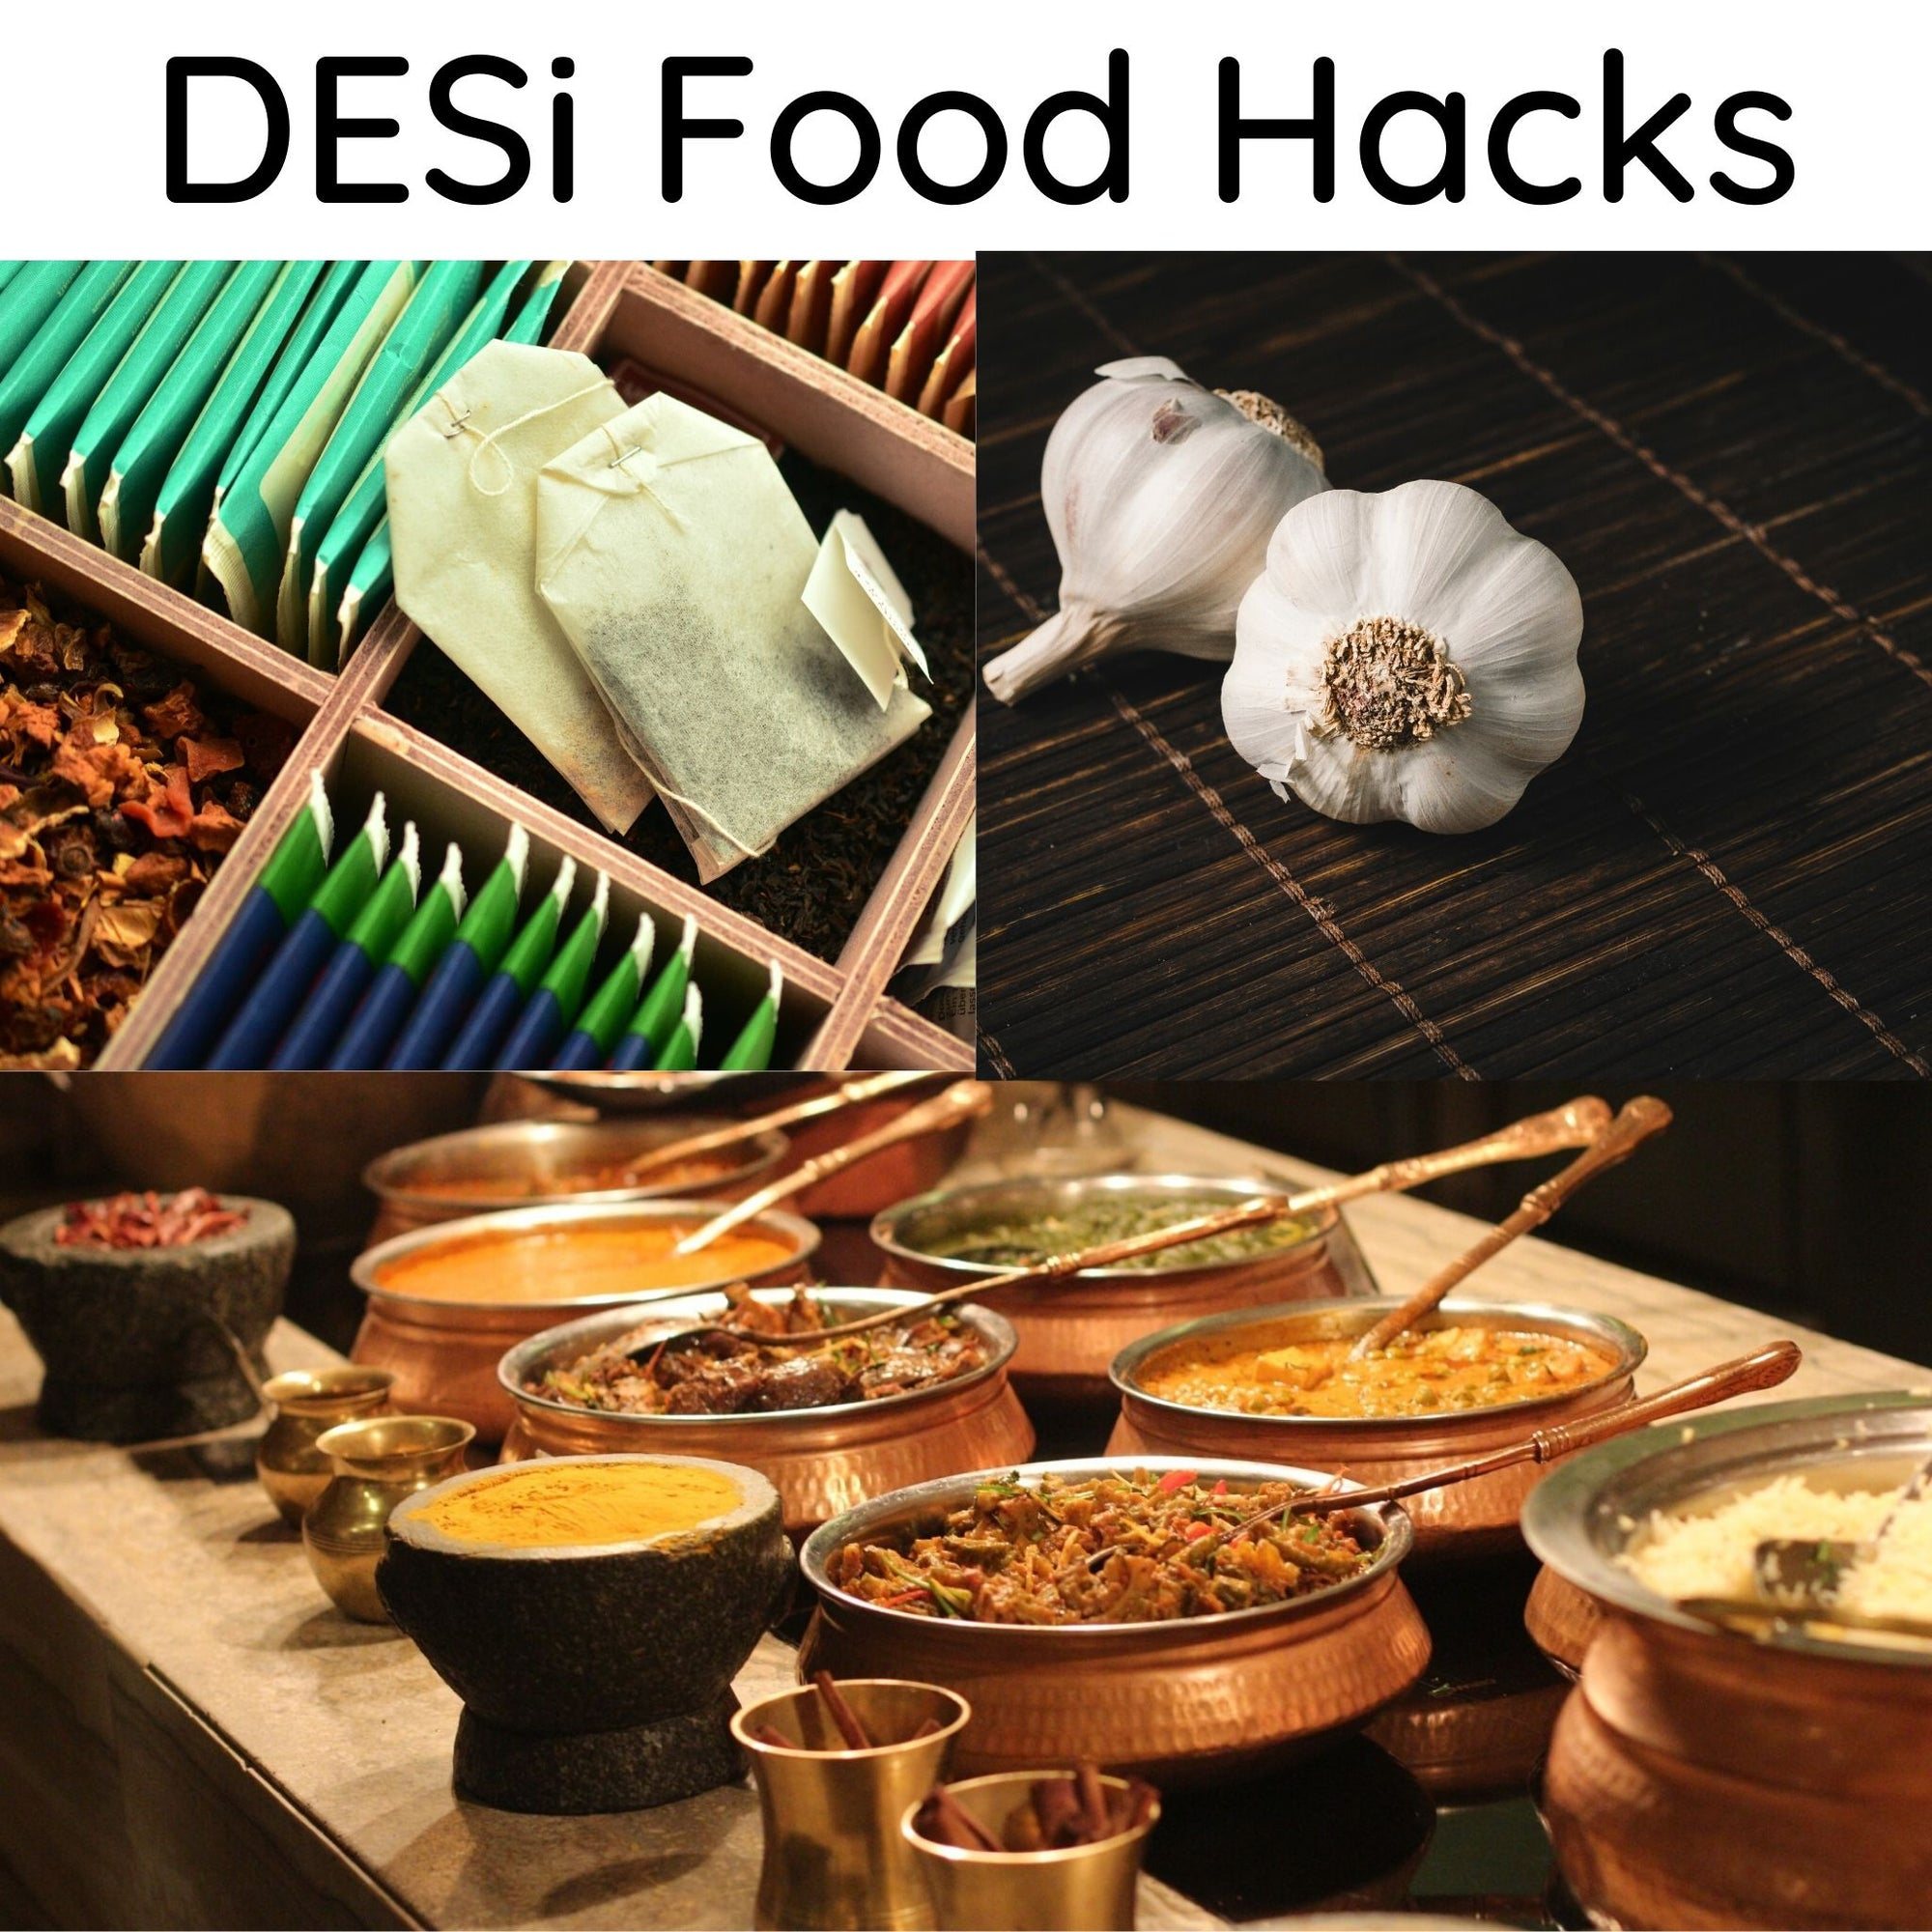 Desi Food Hacks